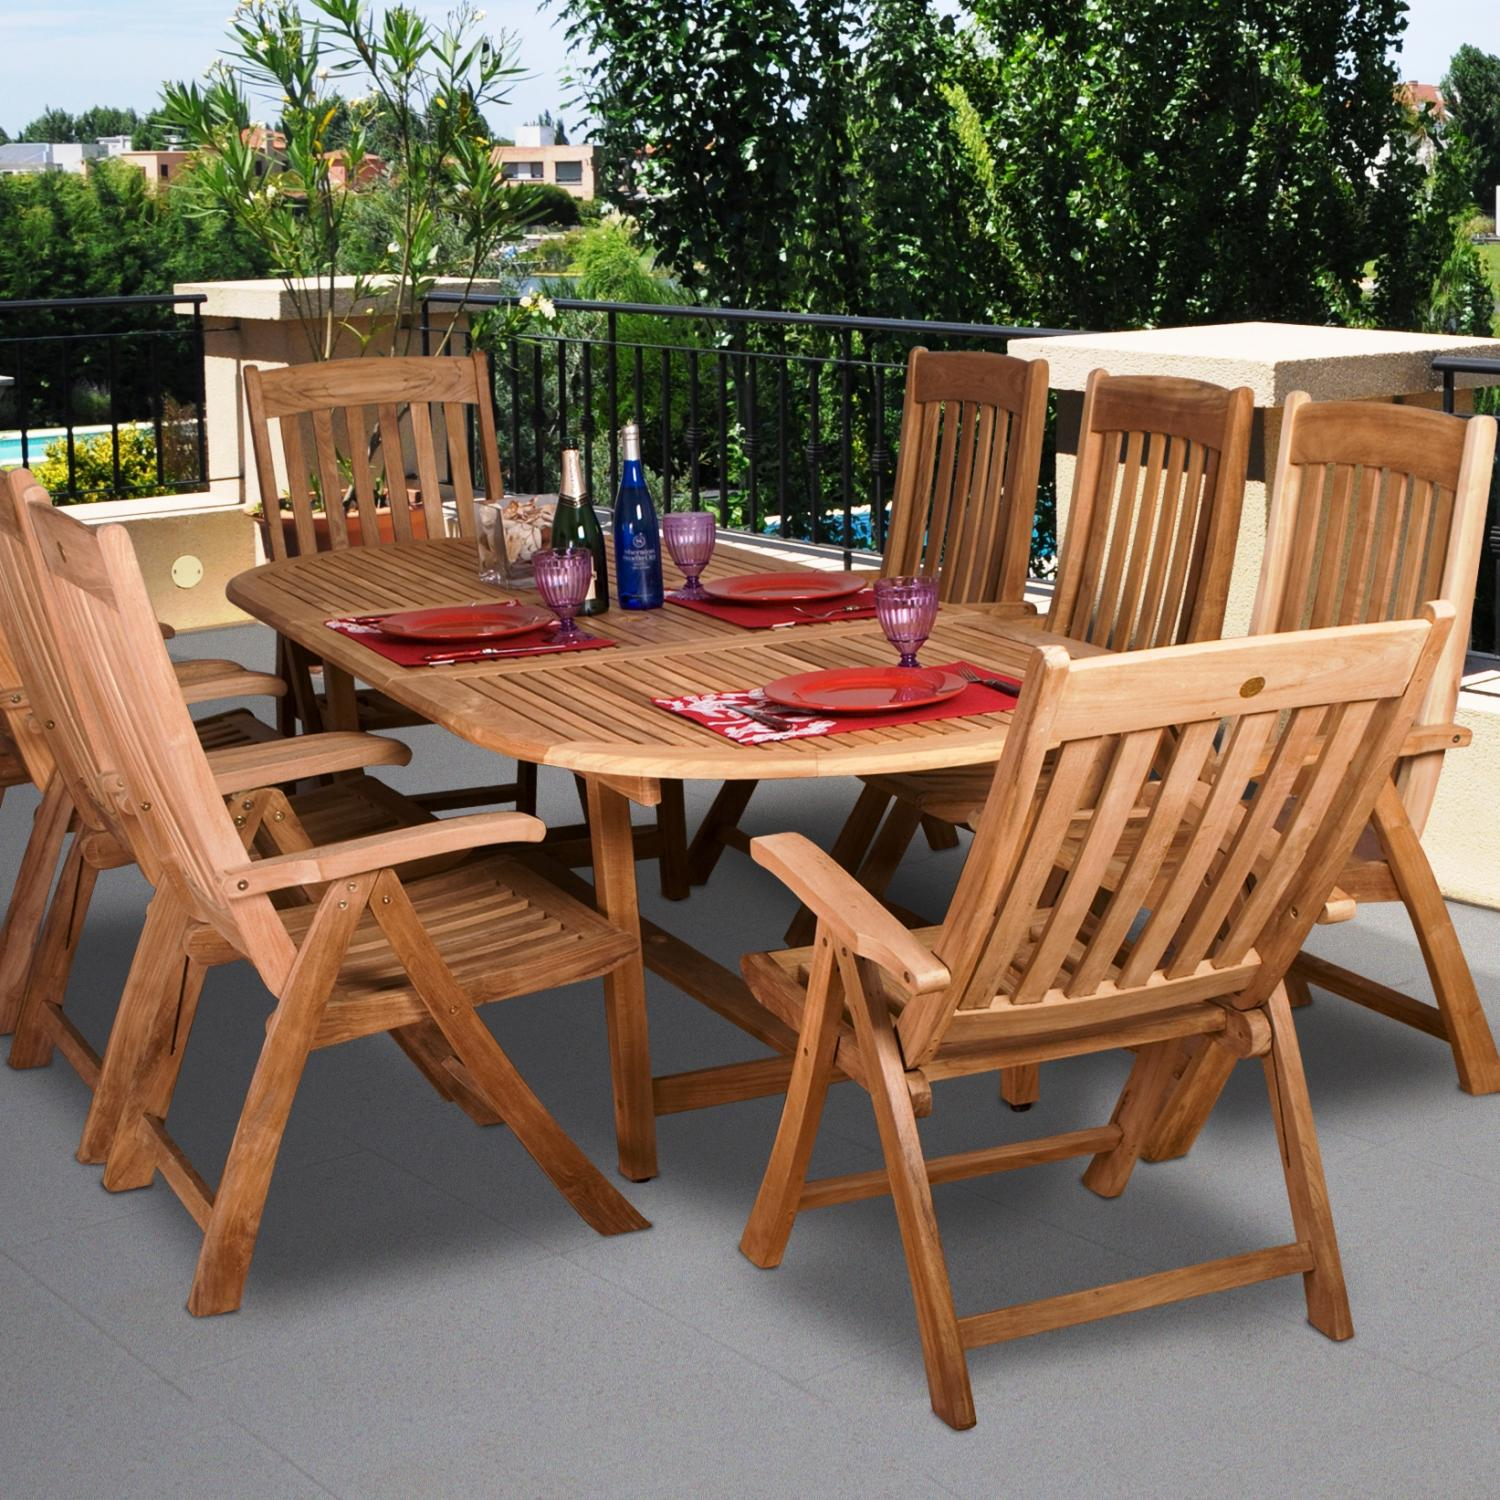 Amazonia Teak Belfast 8-person Teak Patio Dining Set With Extension Table And Reclining Chairs